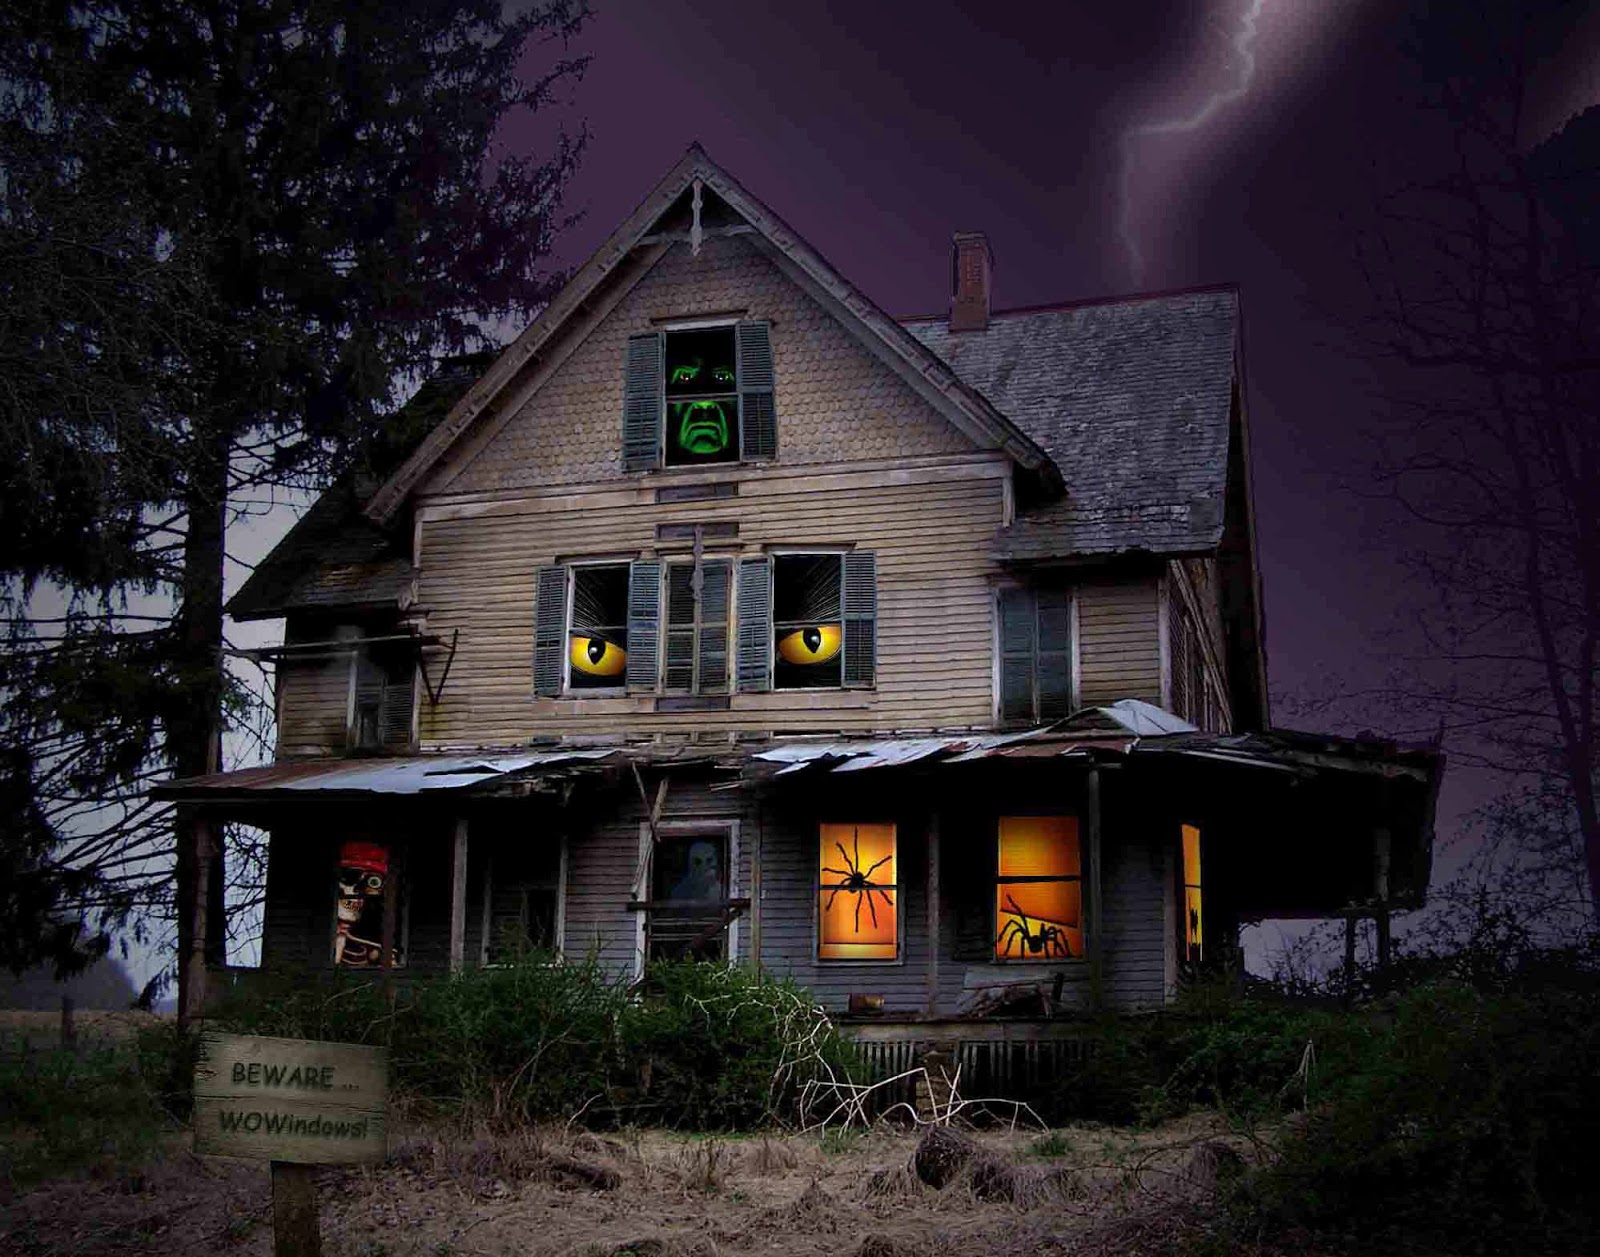 Haunted house hd wallpapers hd wallpapers pics for House images hd